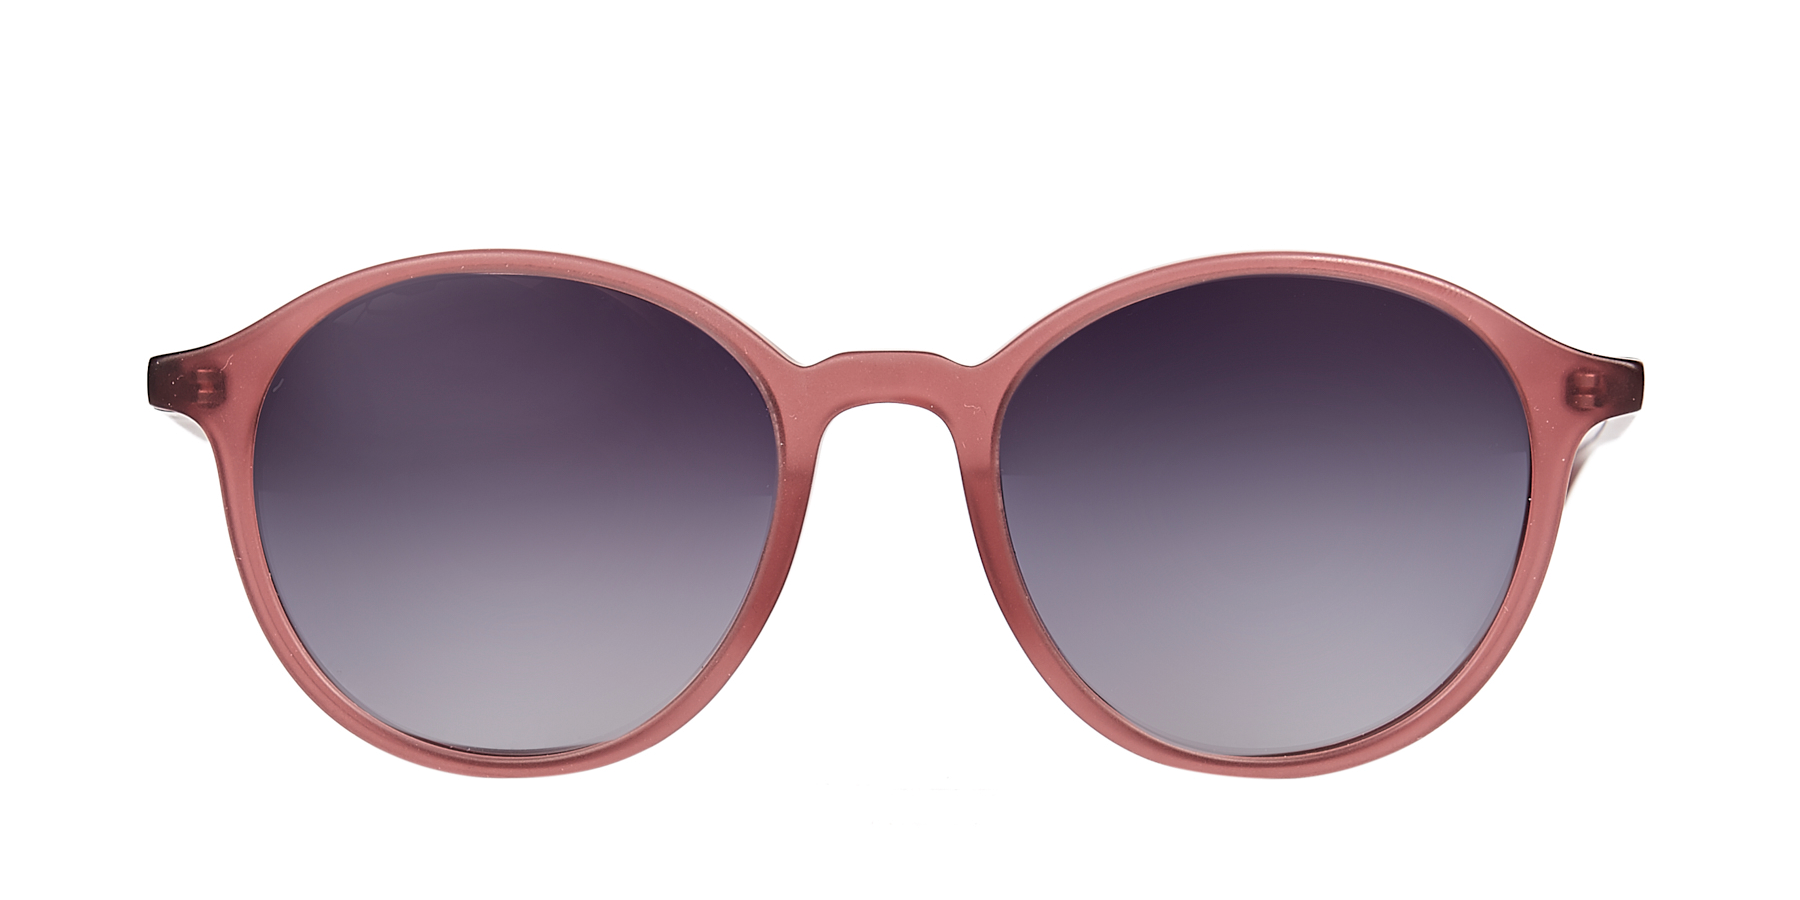 cfb0e59acf660 WHITE LABEL - CULT VISION - CURATED EYEWEAR